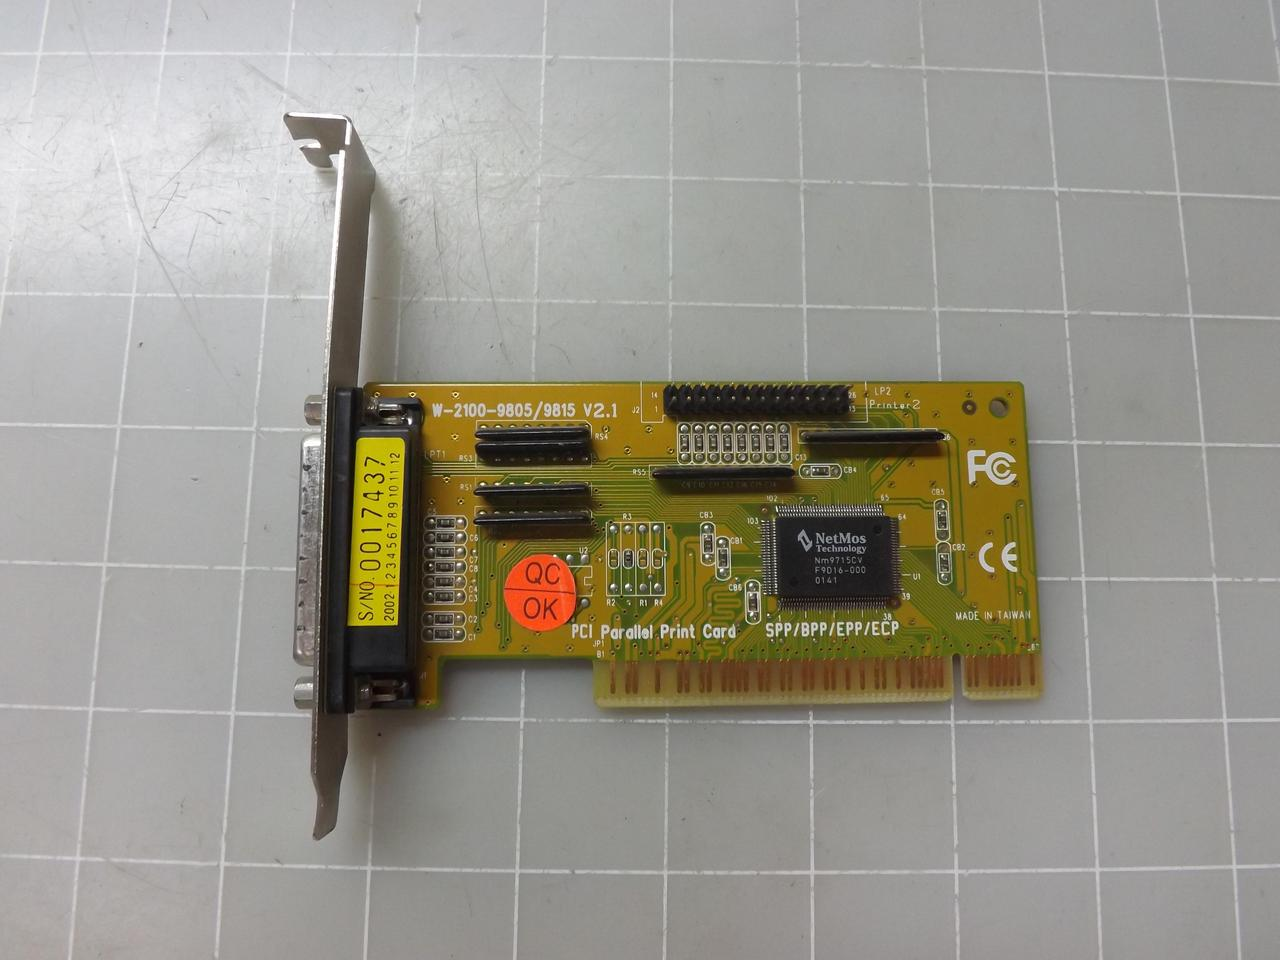 W 2100 9805 9815 PCI Parallel Print Card T50366